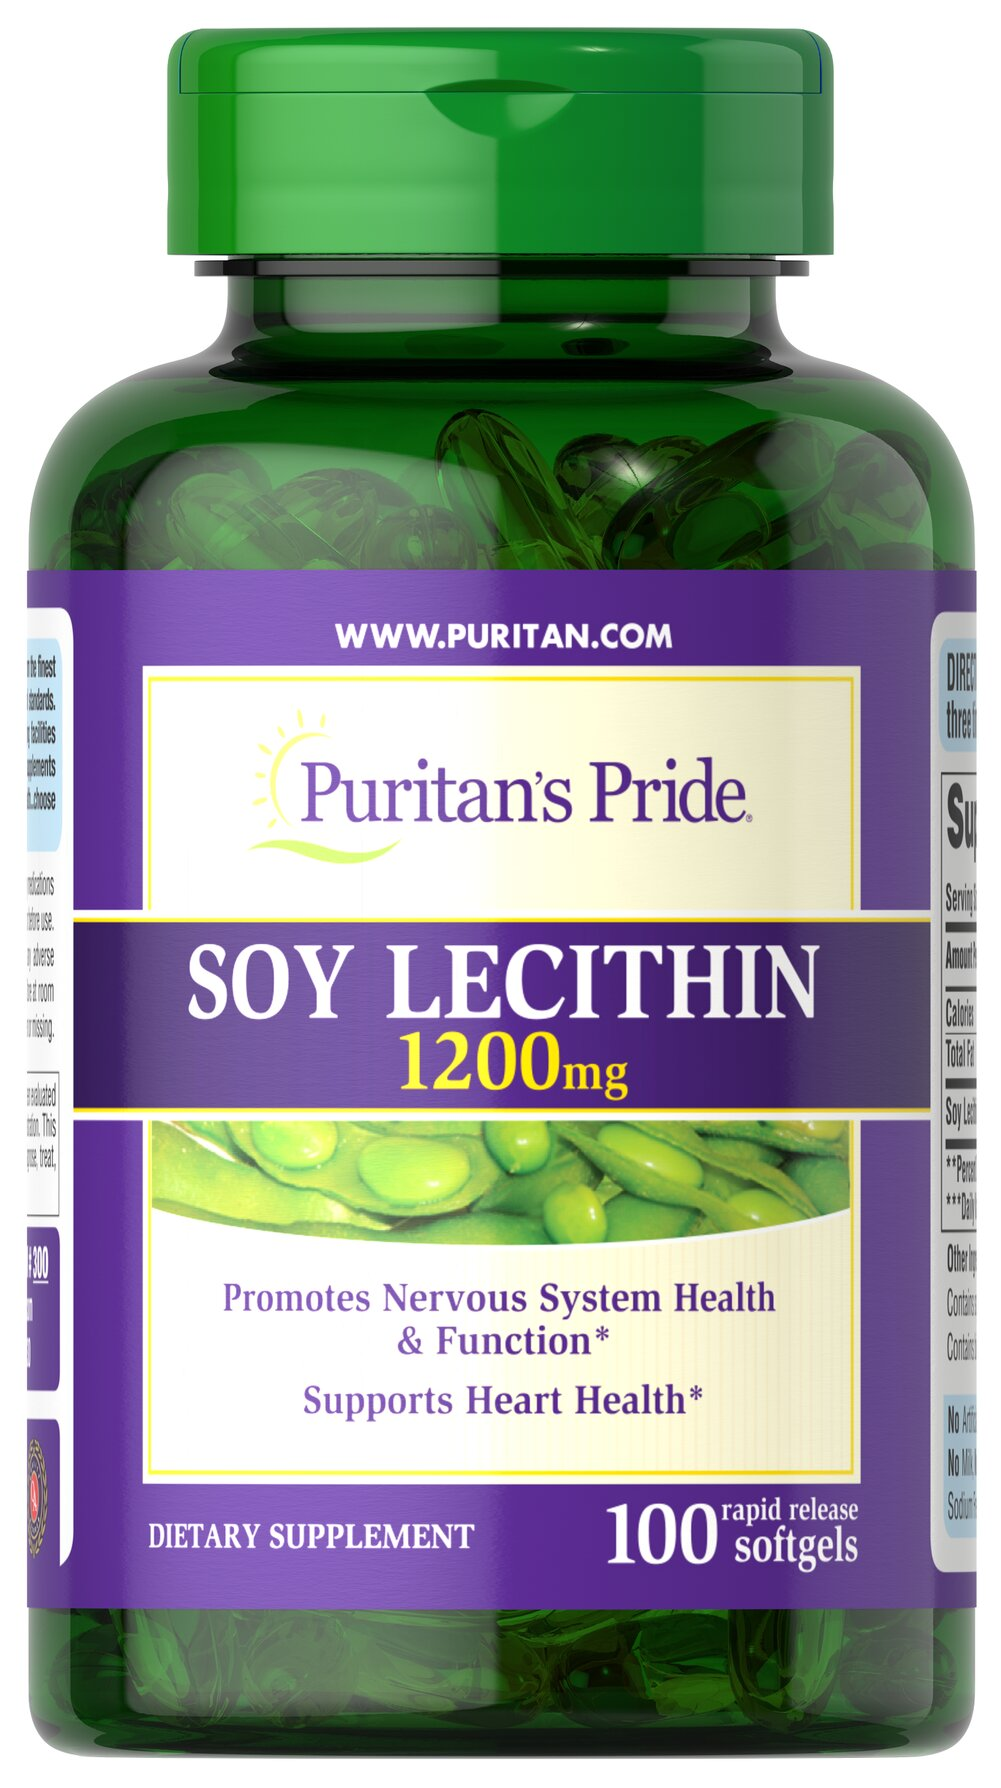 Soy Lecithin 1200 mg <p>Lecithin is an important natural source of Choline and Inositol, two nutrients important for the proper functioning of the body.** Since levels of phospholipids in the brain can decline as you get older, it may be especially important to supplement with a high-quality Lecithin formula from Puritan's Pride.</p> 100 Softgels 1200 mg $13.99